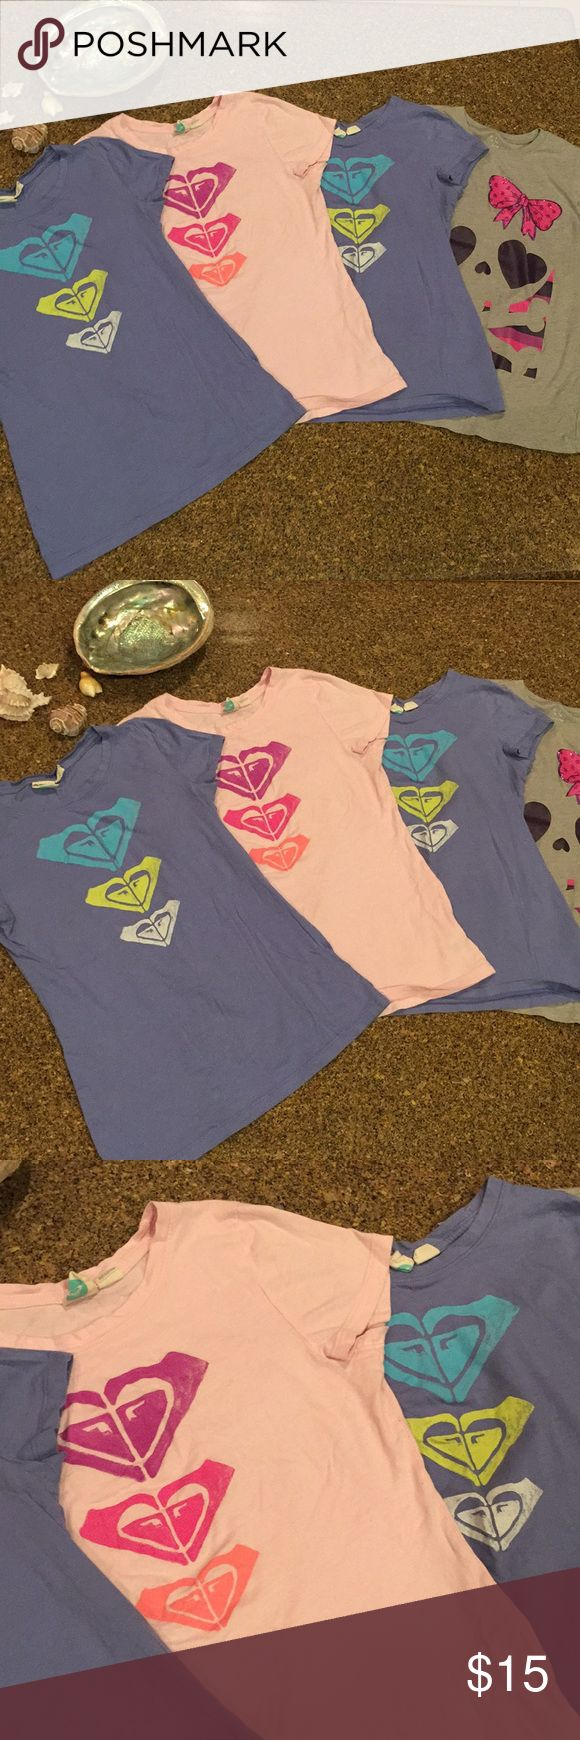 Roxy T-shirts Selling three Roxy T-shirts the gray one is thrown in for free. All only worn a few times before my girls grew out of them. They are listed size extra-large 14 girls but would fit an extra small woman. Roxy Tops Tees - Short Sleeve